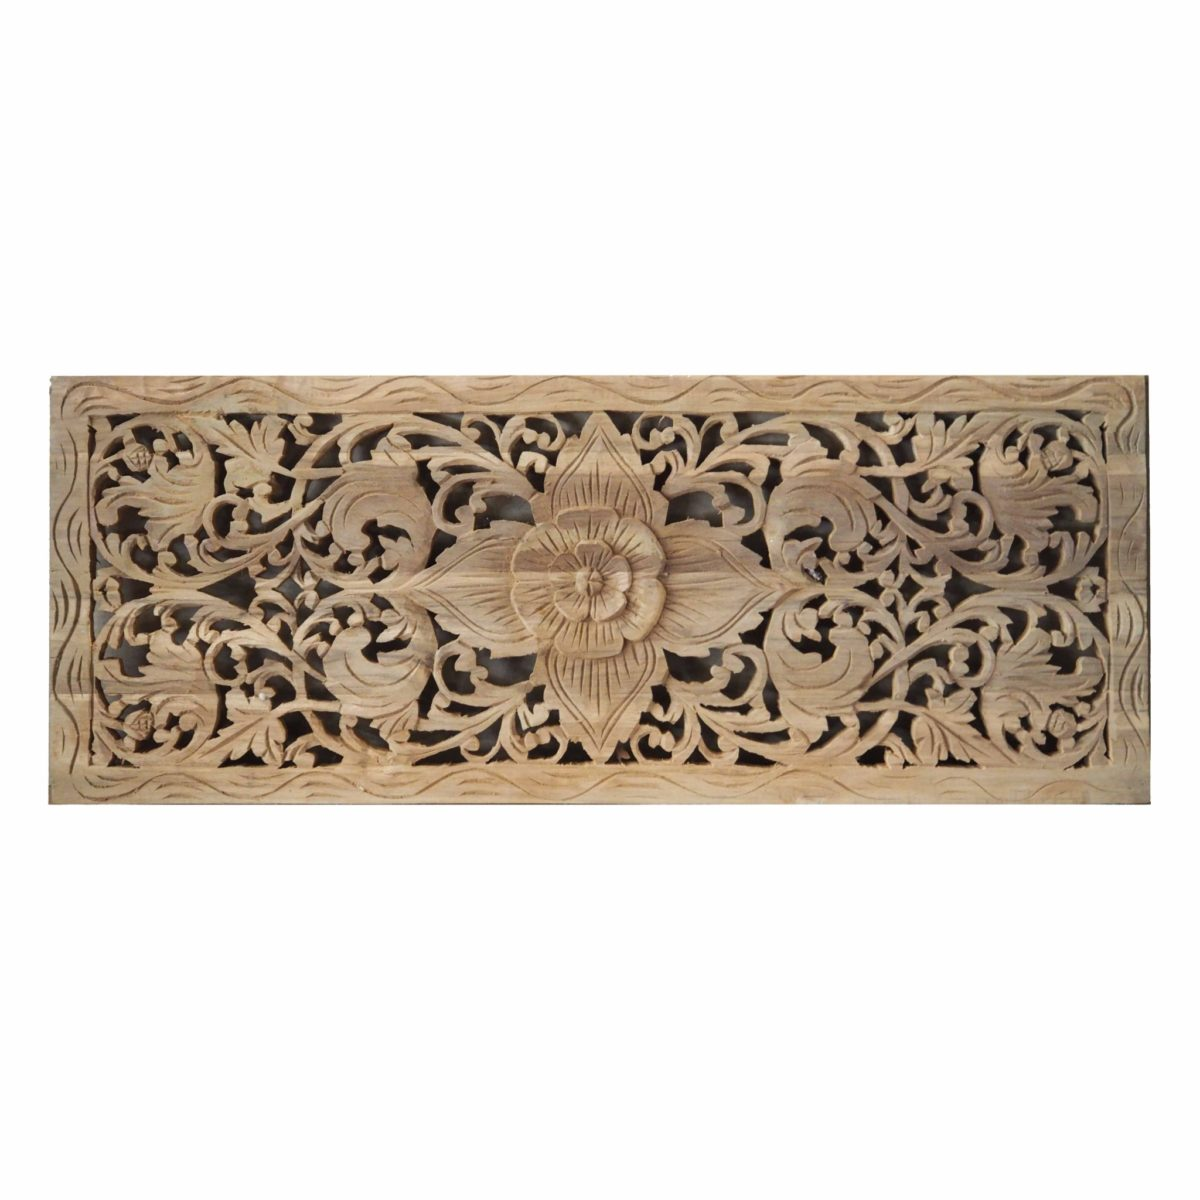 Wood-Carved-Wall-Art-Panel-Wooden-Plaque-Decor